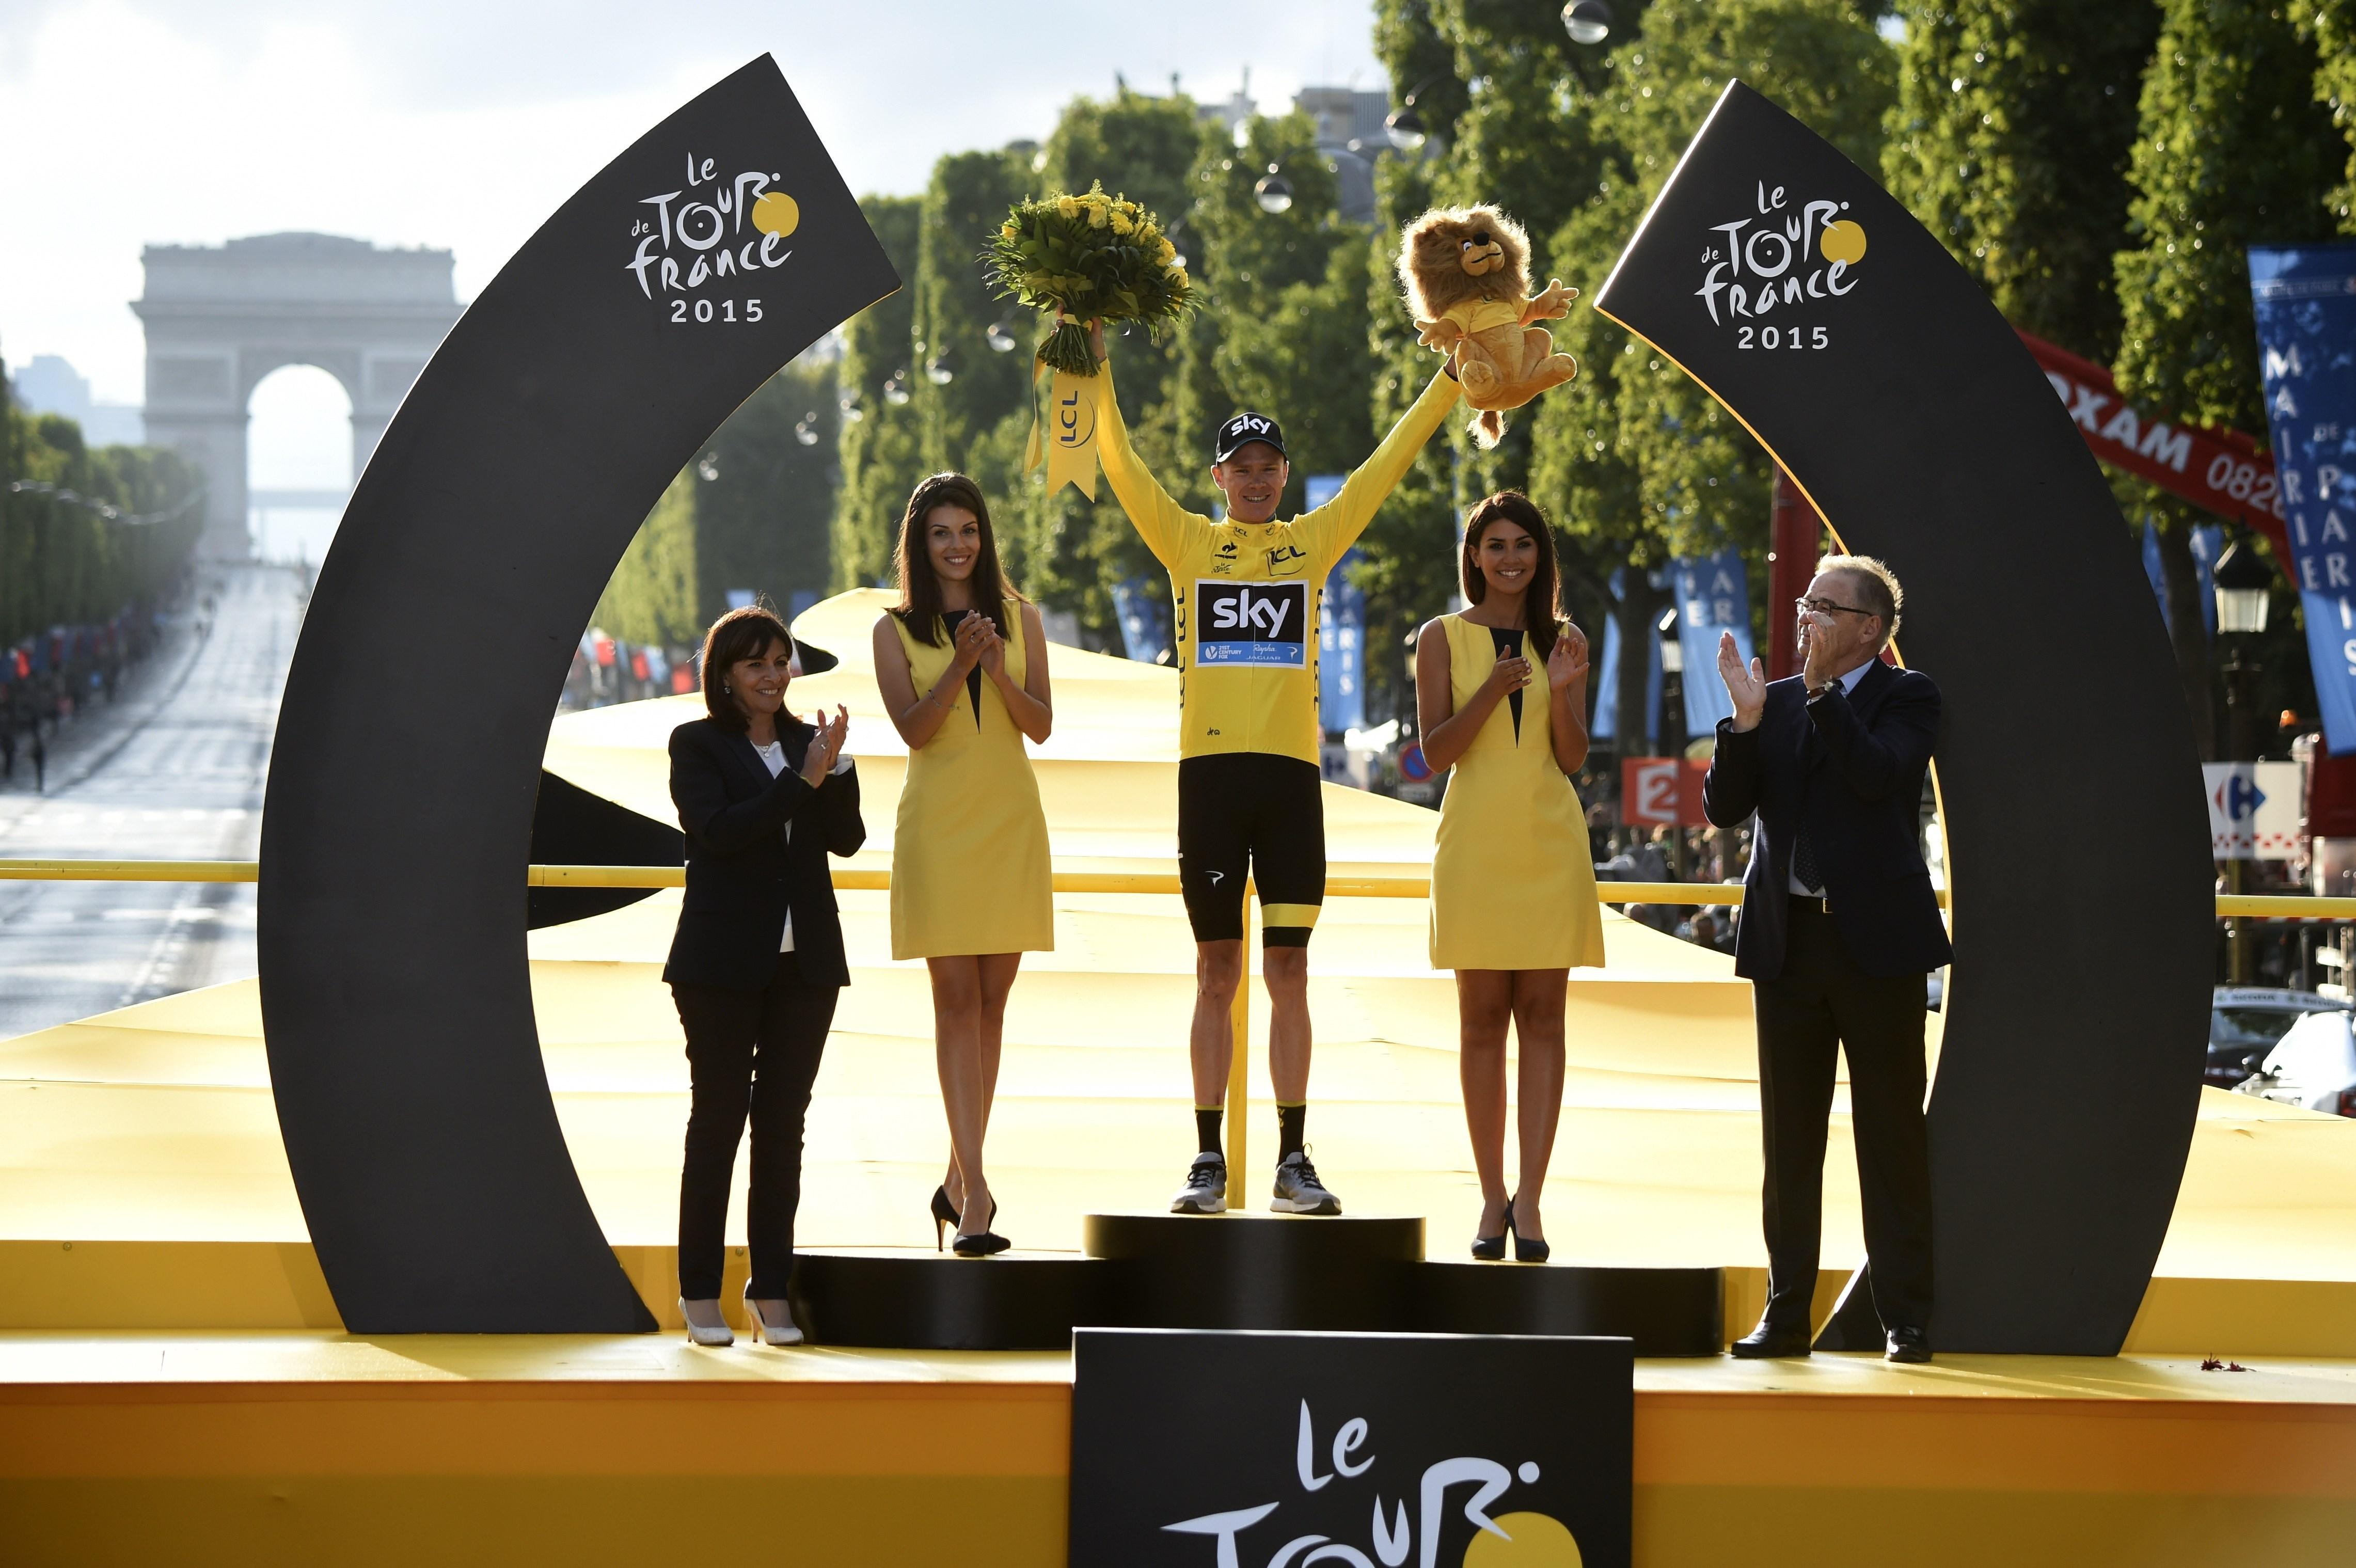 The use of podium girls at the Tour de France is set to come to an end